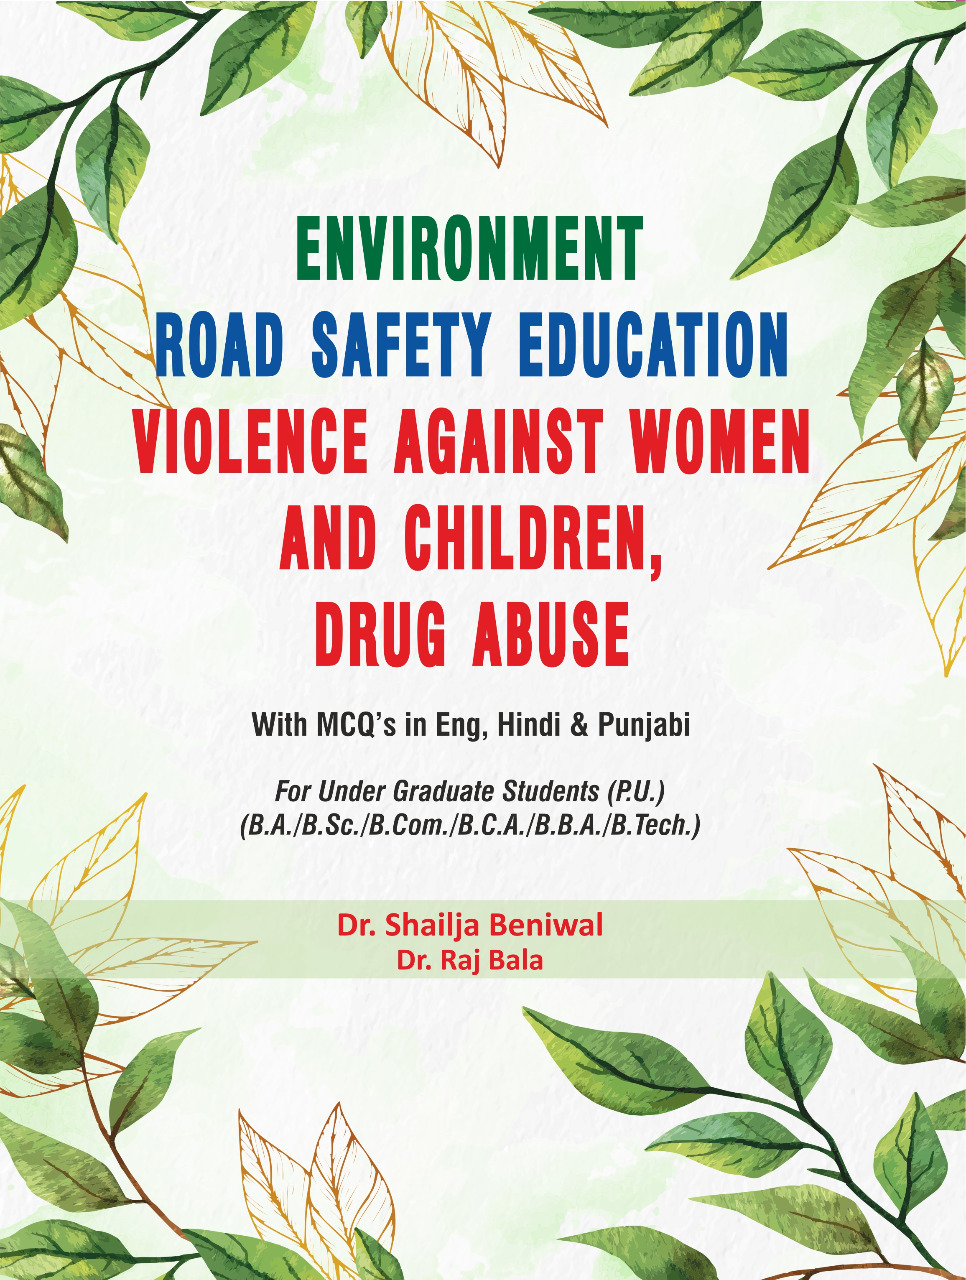 Enviroment, road safety education, violence against women and children, Drug abuse with MCQ's in English, hindi and punjabiby Dr Shailja Beniwal and Dr Raj Bala Edition 2020 for Panjab University